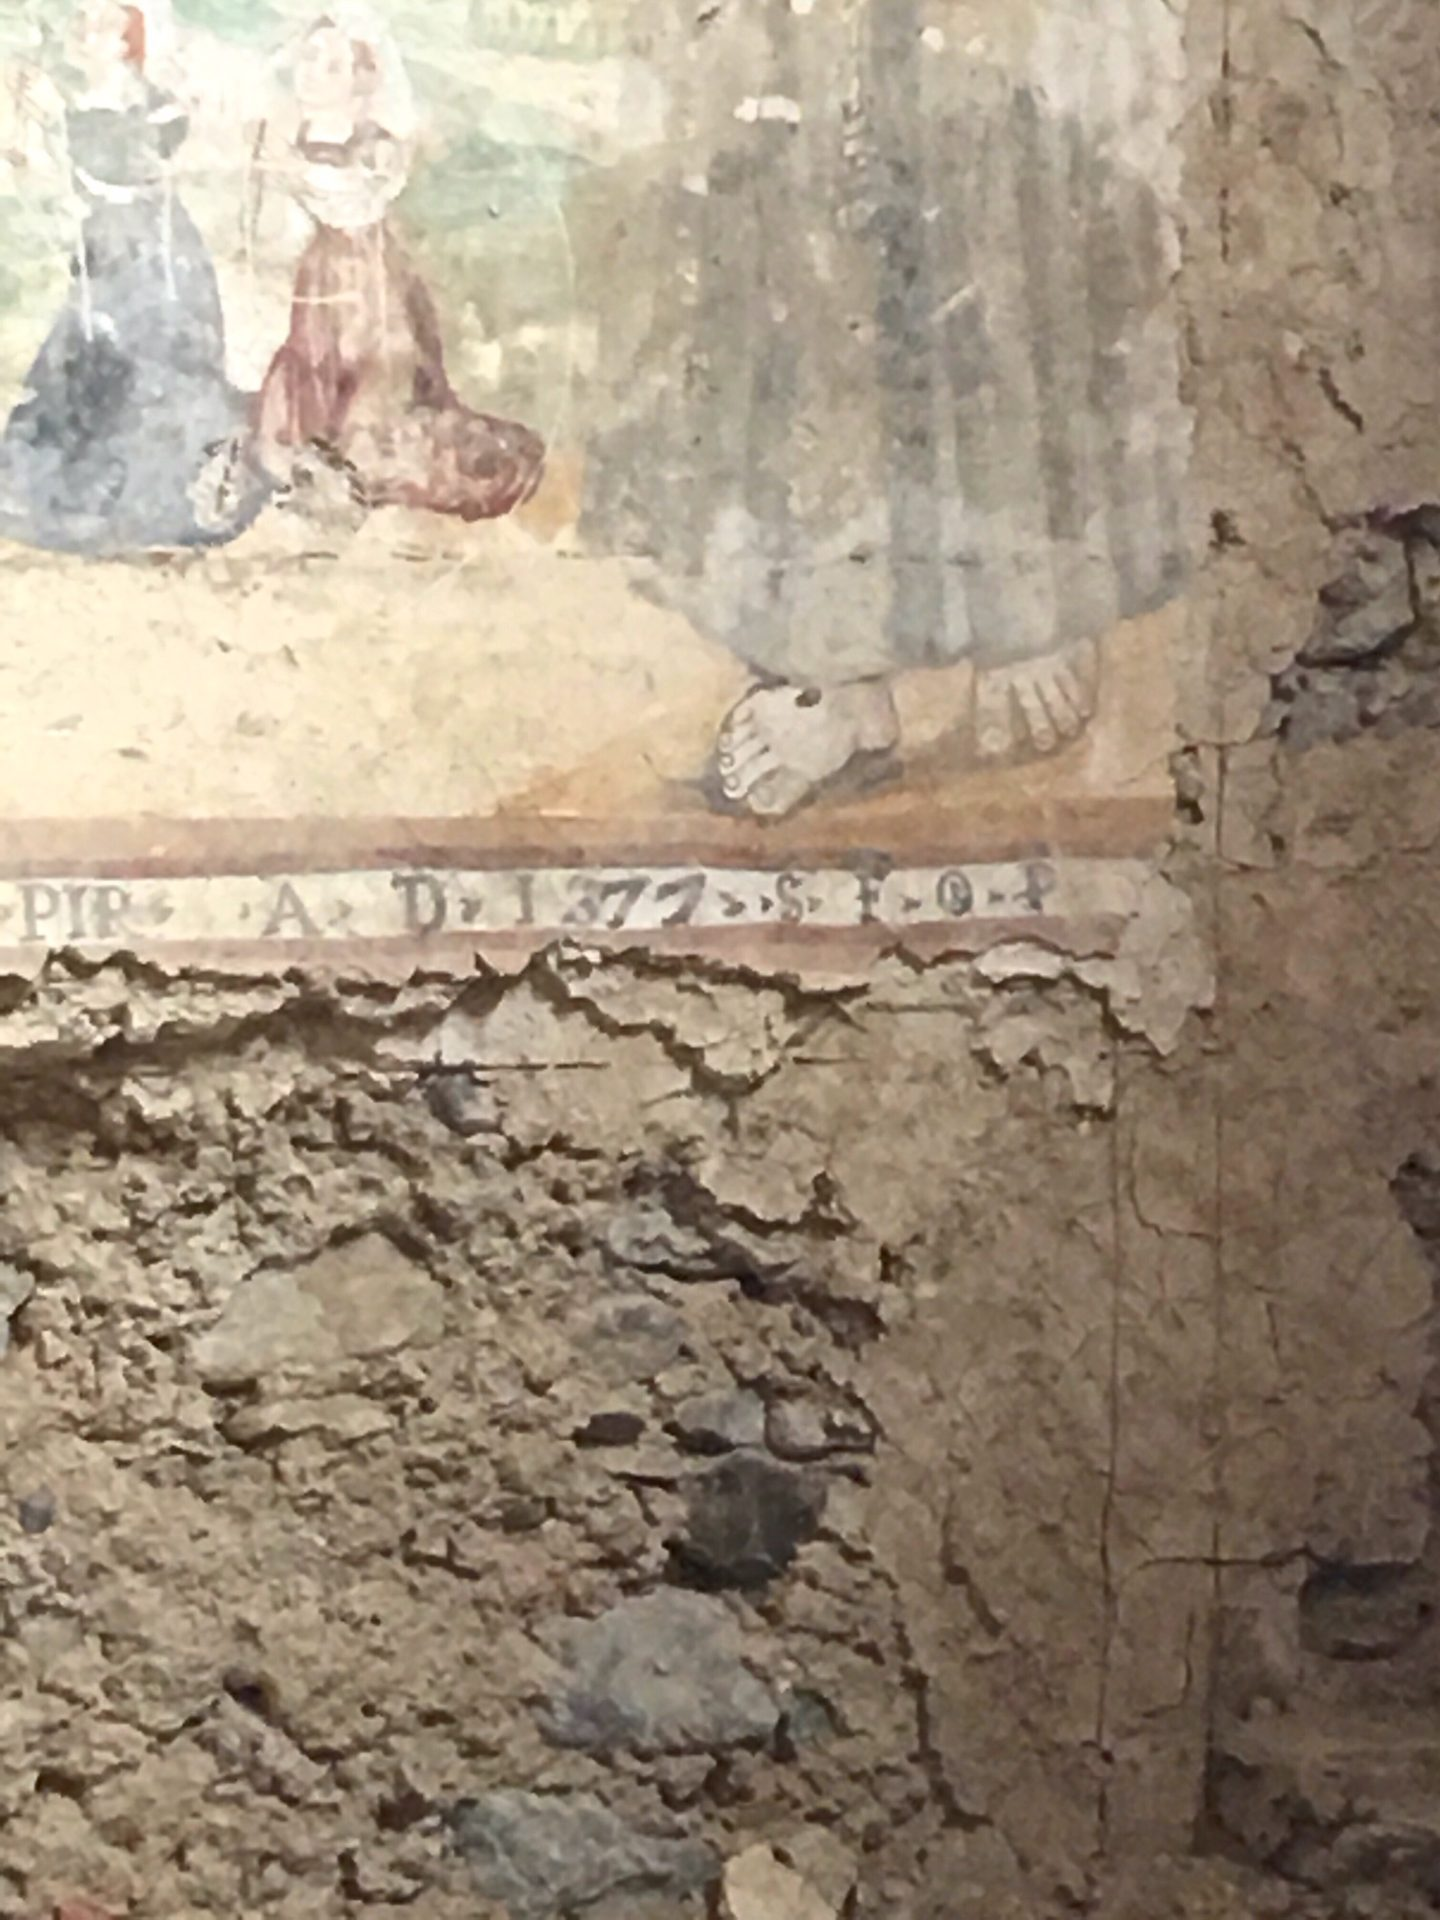 frescoe in Convento San Francesco, Basilicata, dated to 1377 A.D